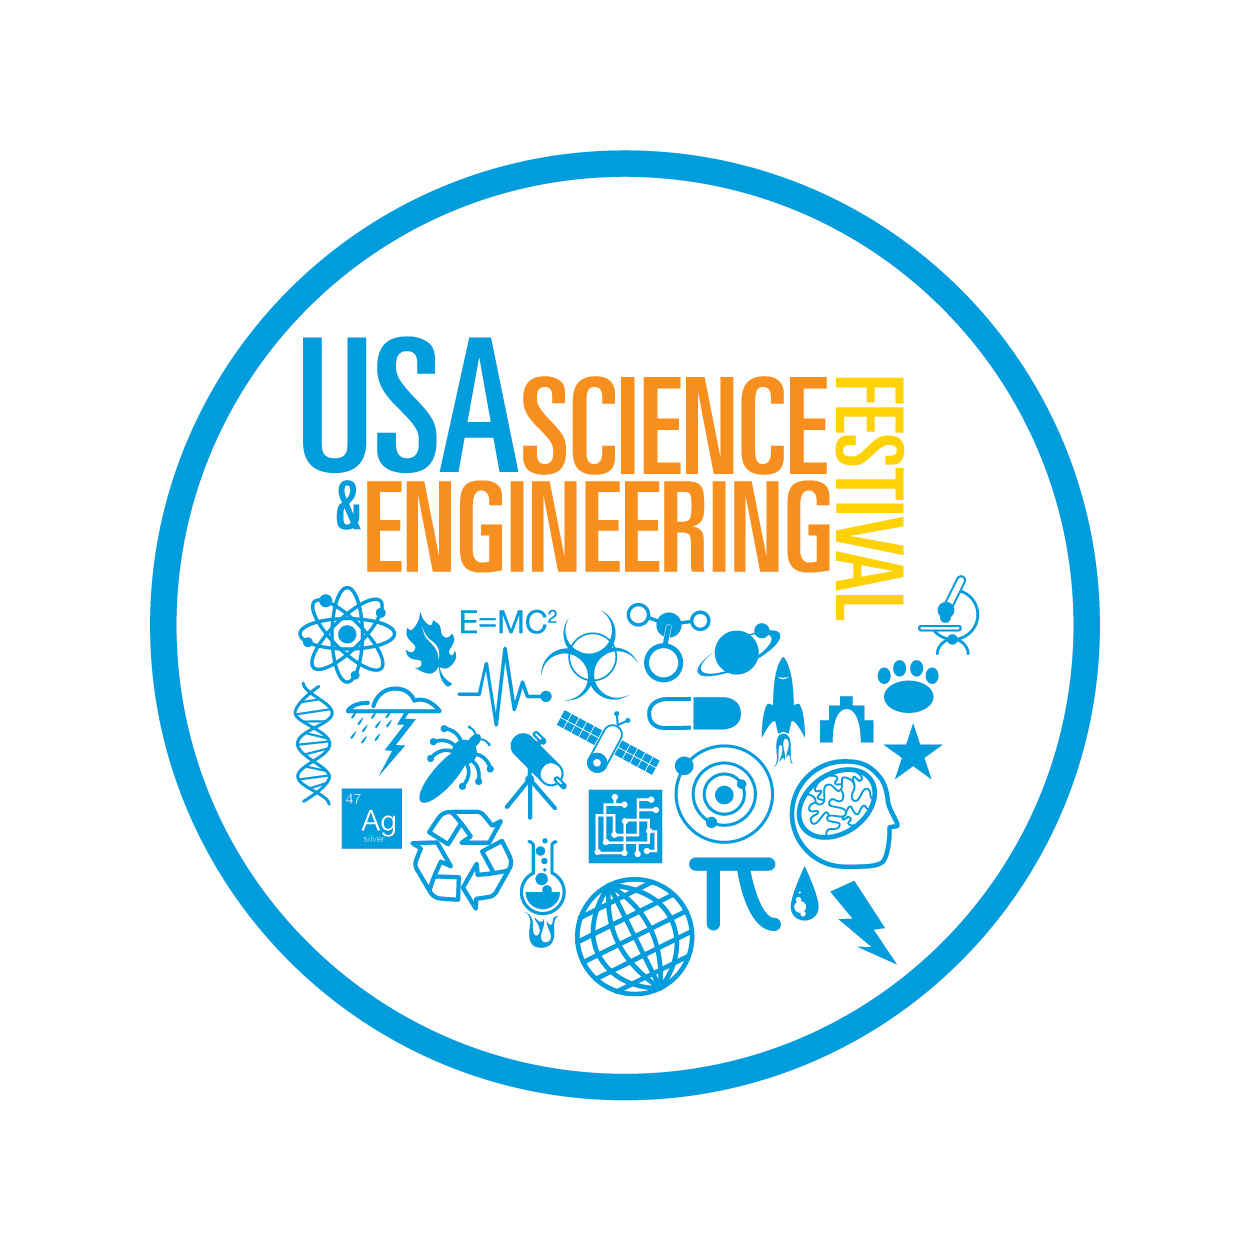 about the 2018 festival expo usa science engineering festival